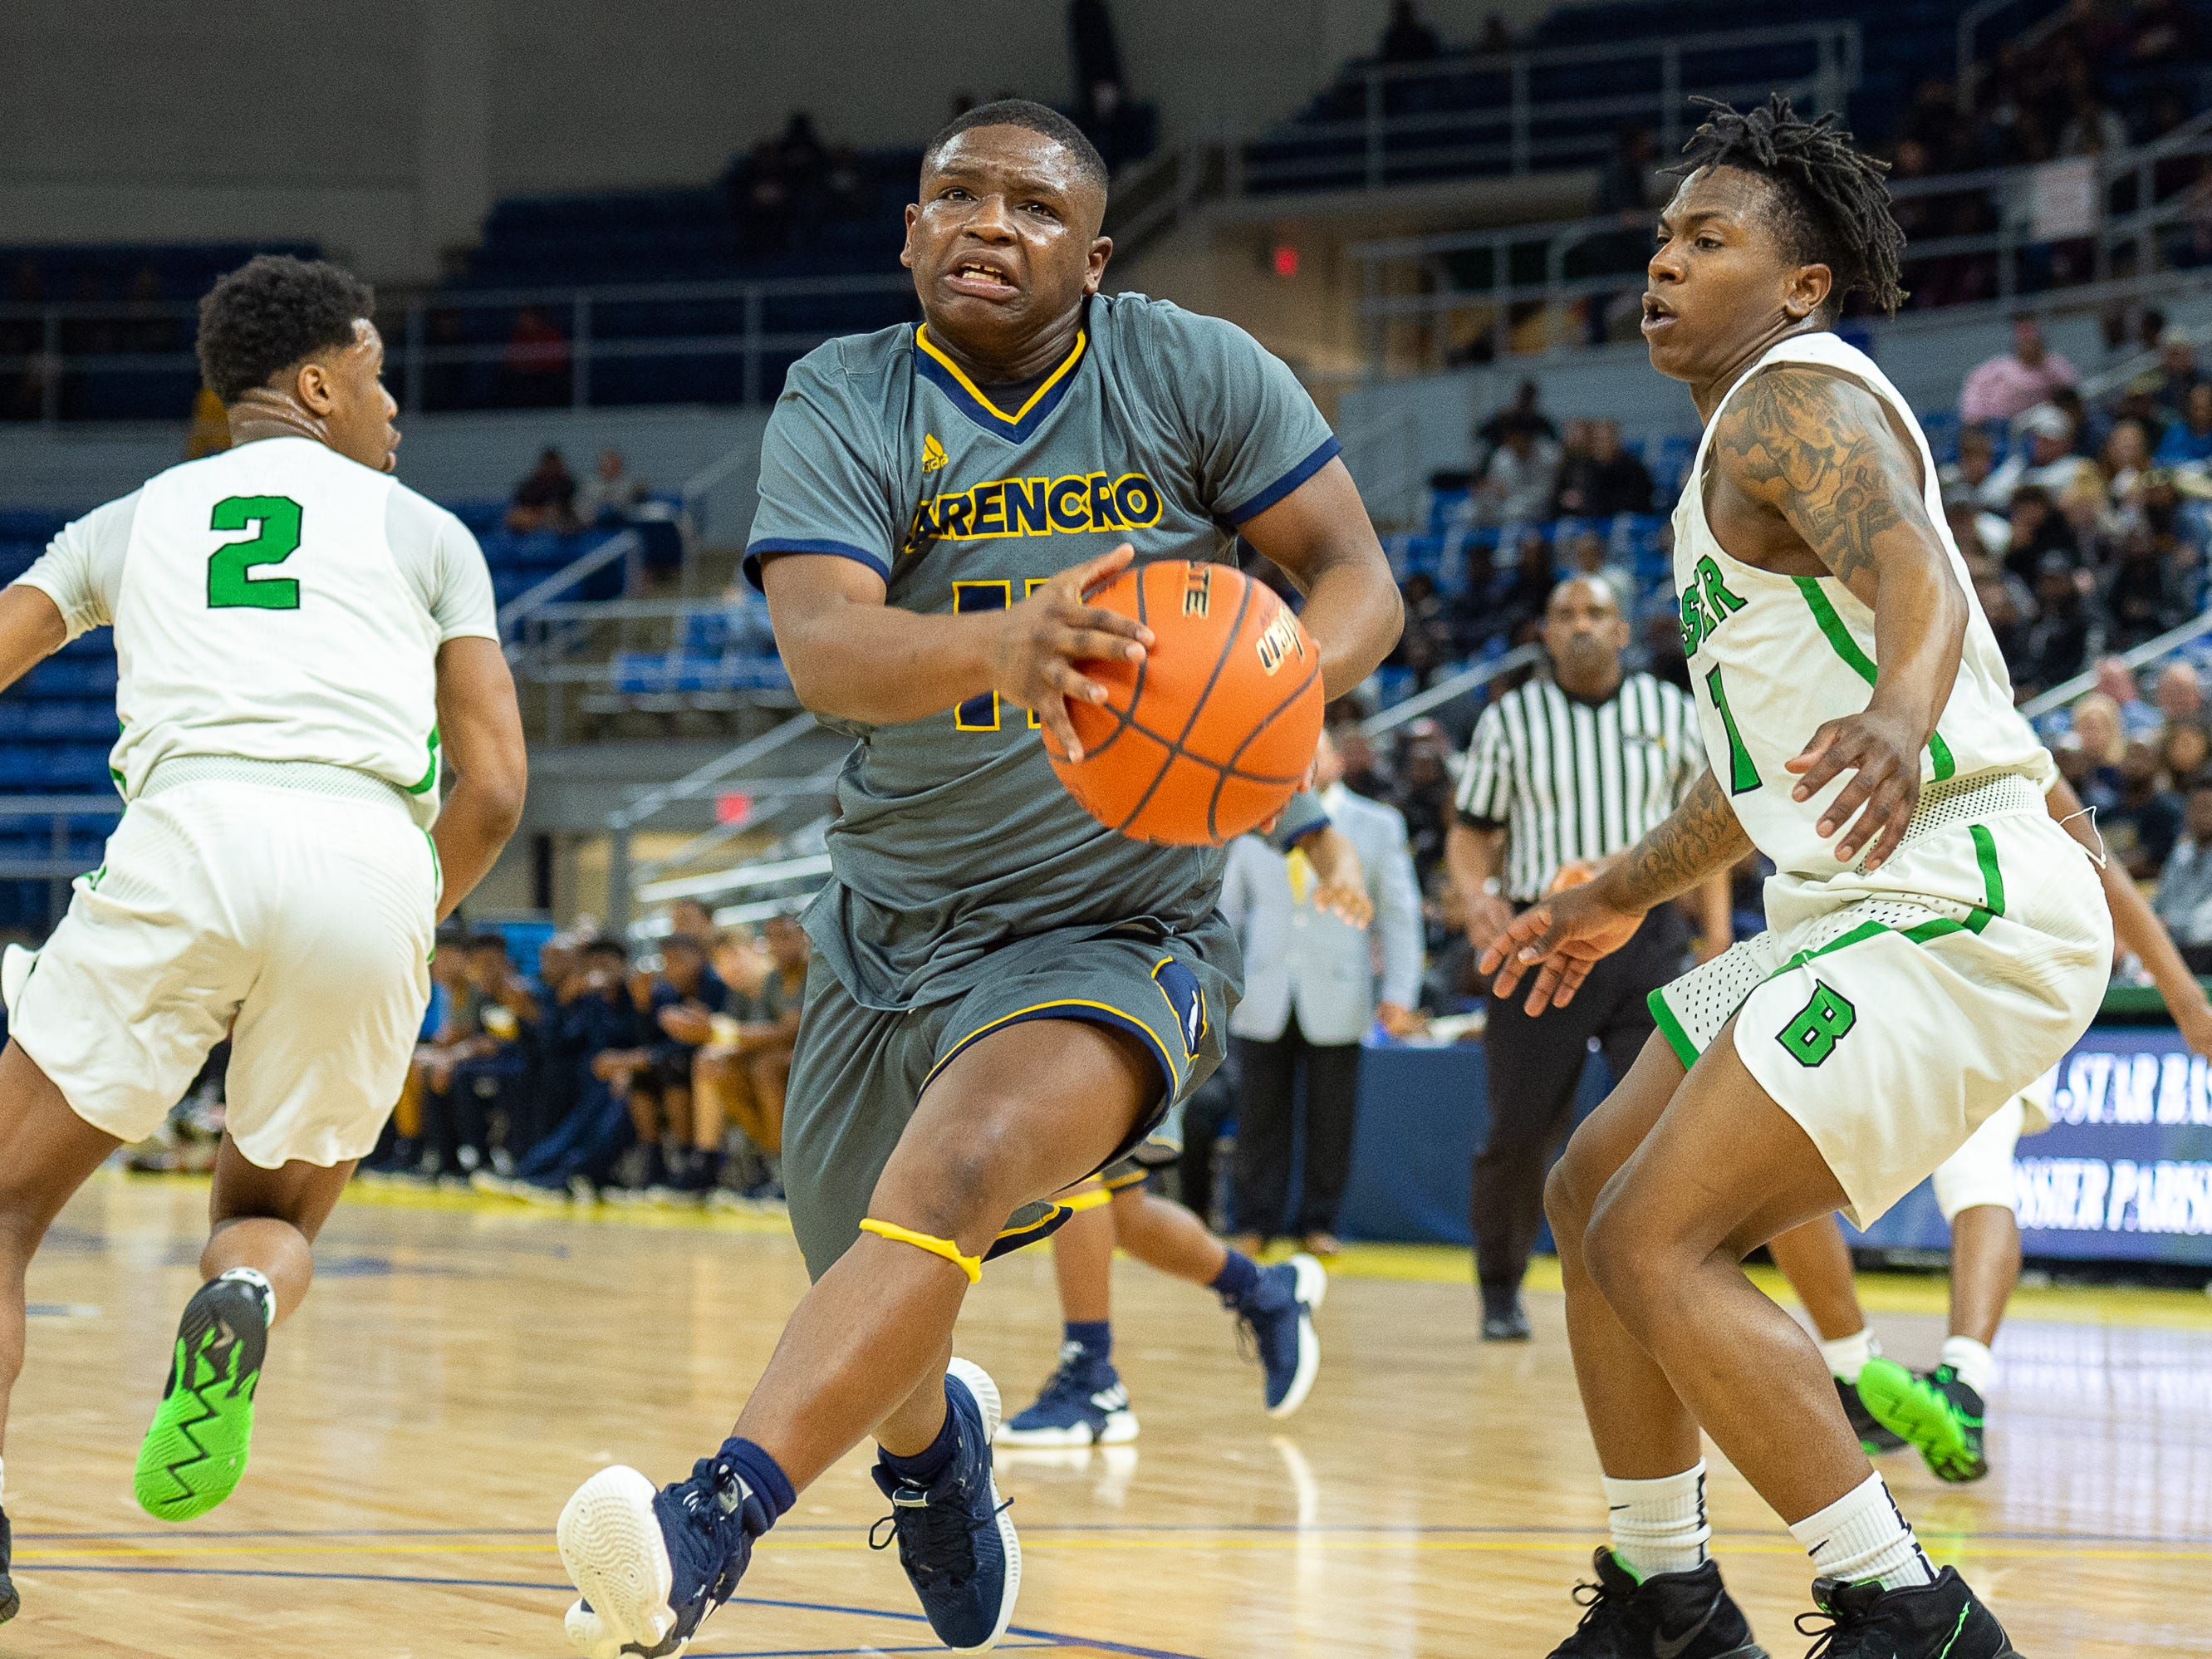 Carencro falls to Bossier in the Semi Final round of the LHSAA State Championships. Tuesday, March 5, 2019.